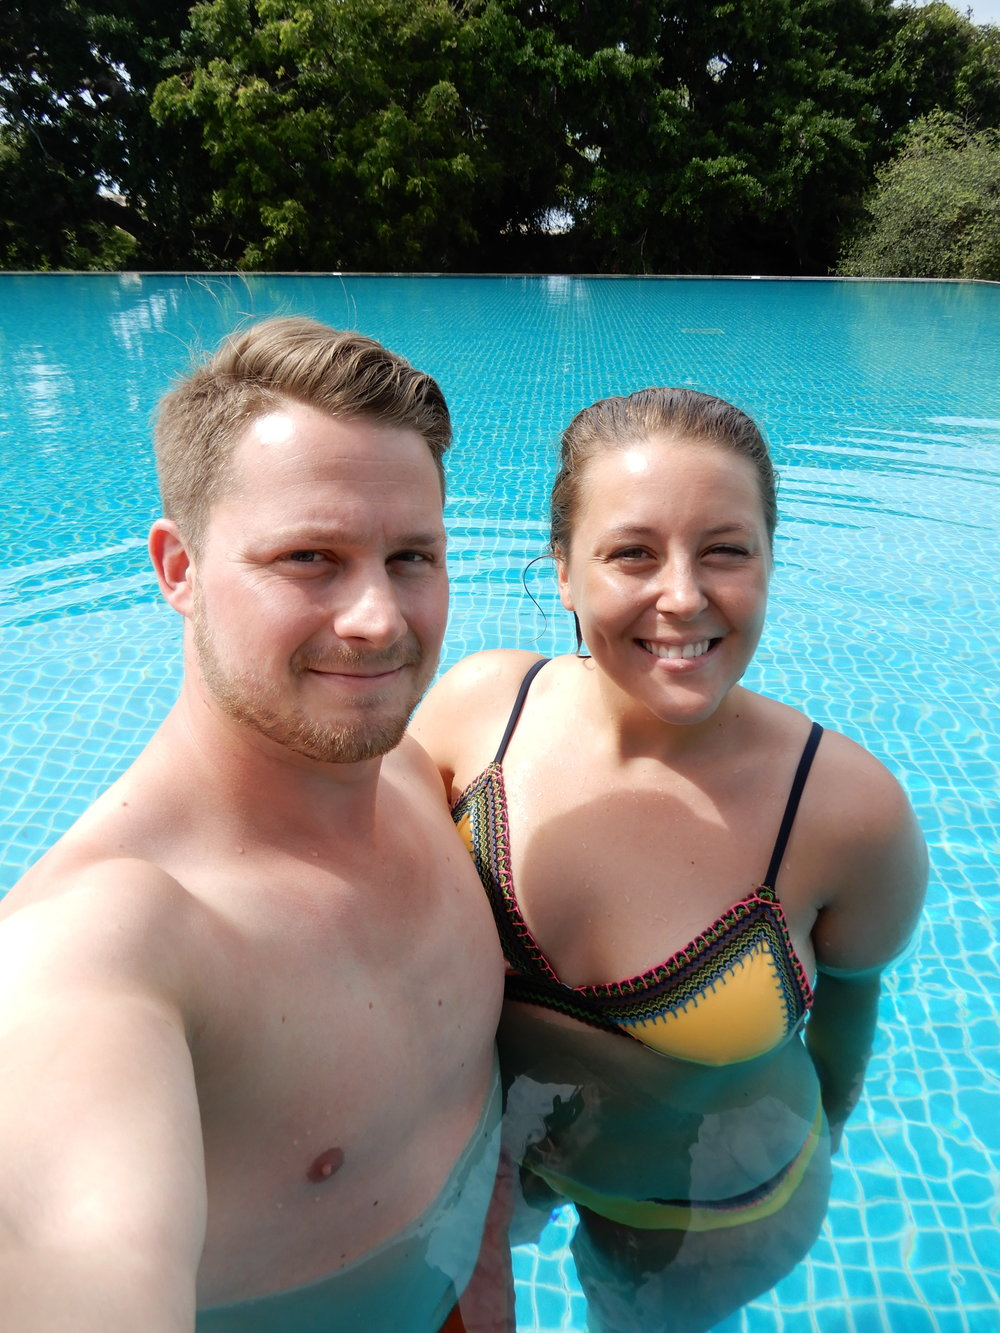 invite-to-paradise-sri-lanka-maldives-holiday-honeymoon-specialists-customer-feedback-mary-martyn-mellet-76.JPG